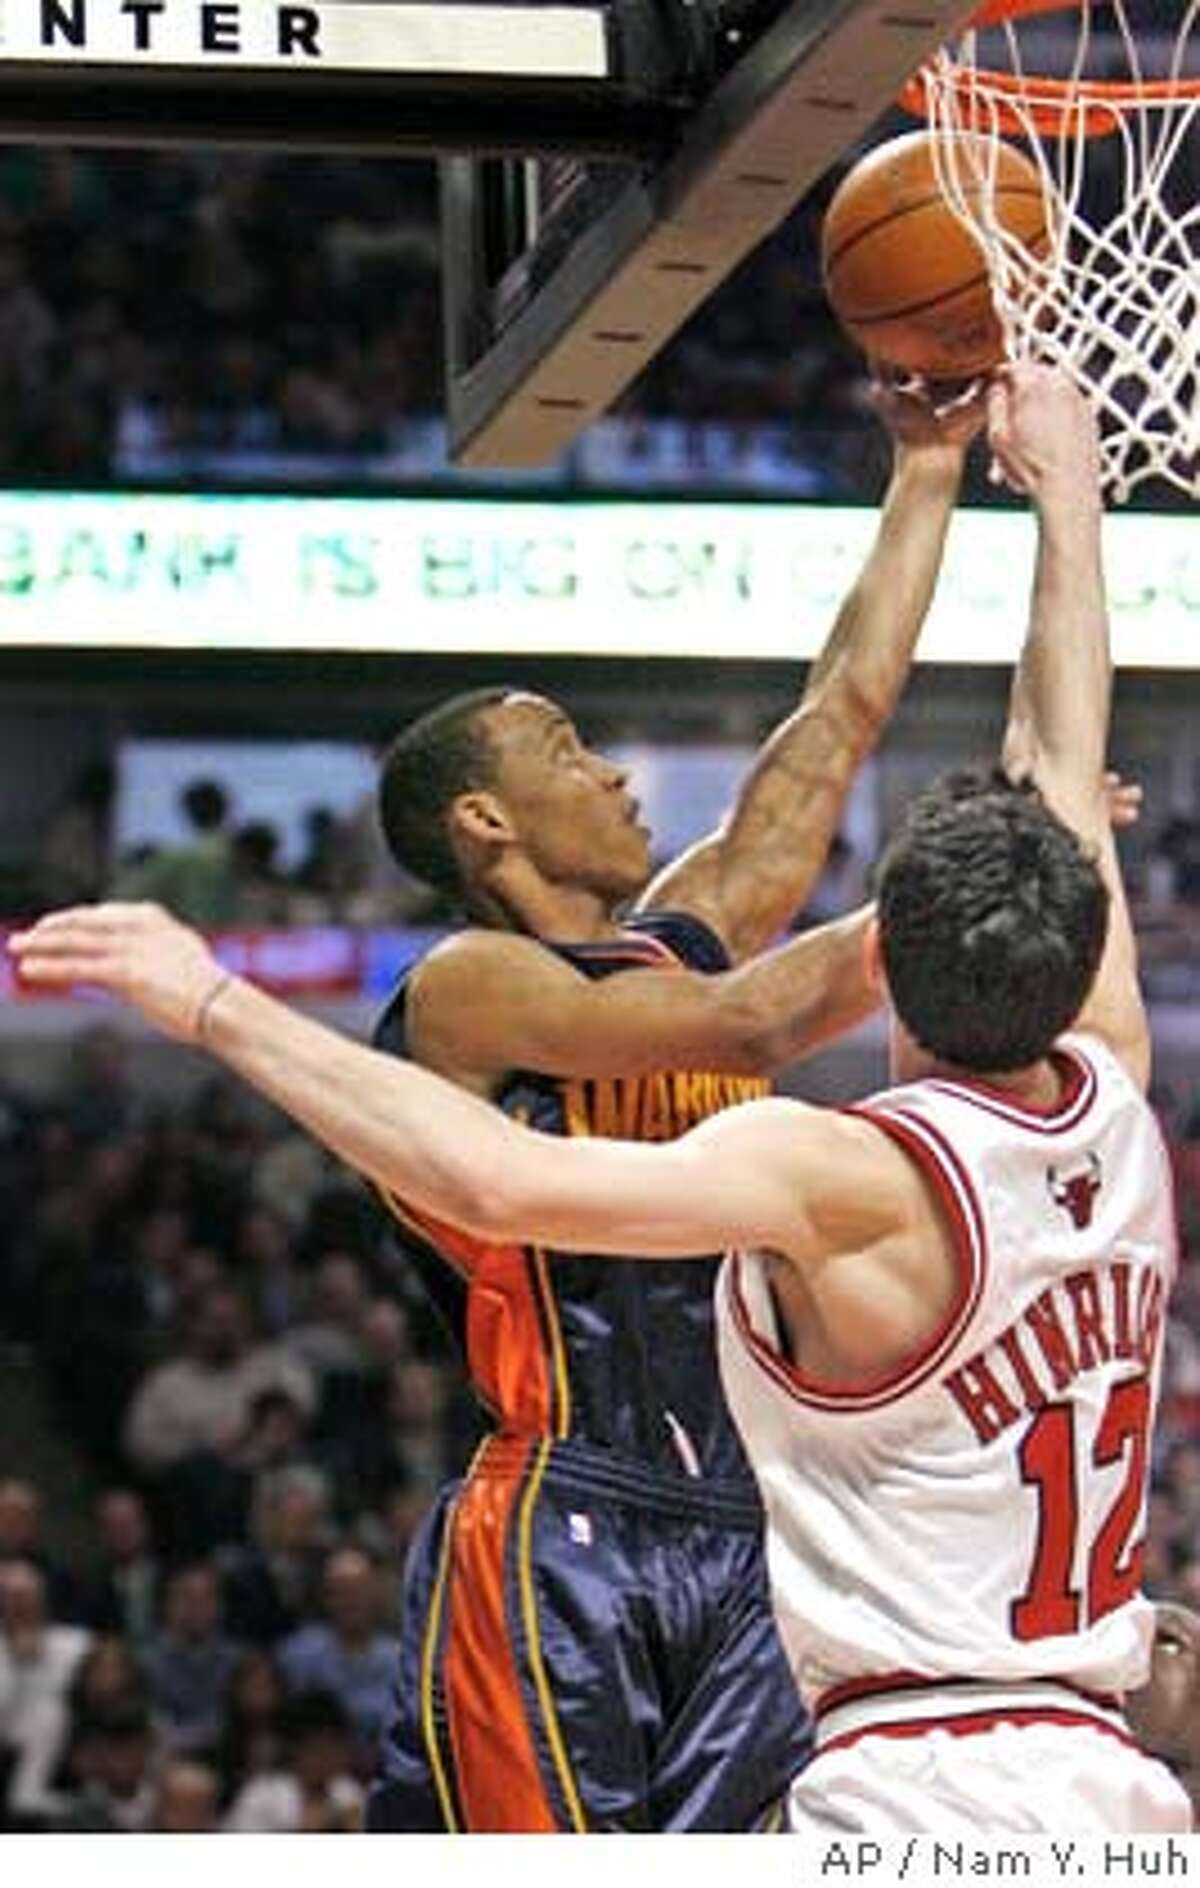 Golden State Warriors guard Monta Ellis, left, goes up for a shot against Chicago Bulls' Kirk Hinrich during the first quarter of an NBA basketball game in Chicago, Wednesday, Feb. 28, 2007.(AP Photo/Nam Y. Huh)